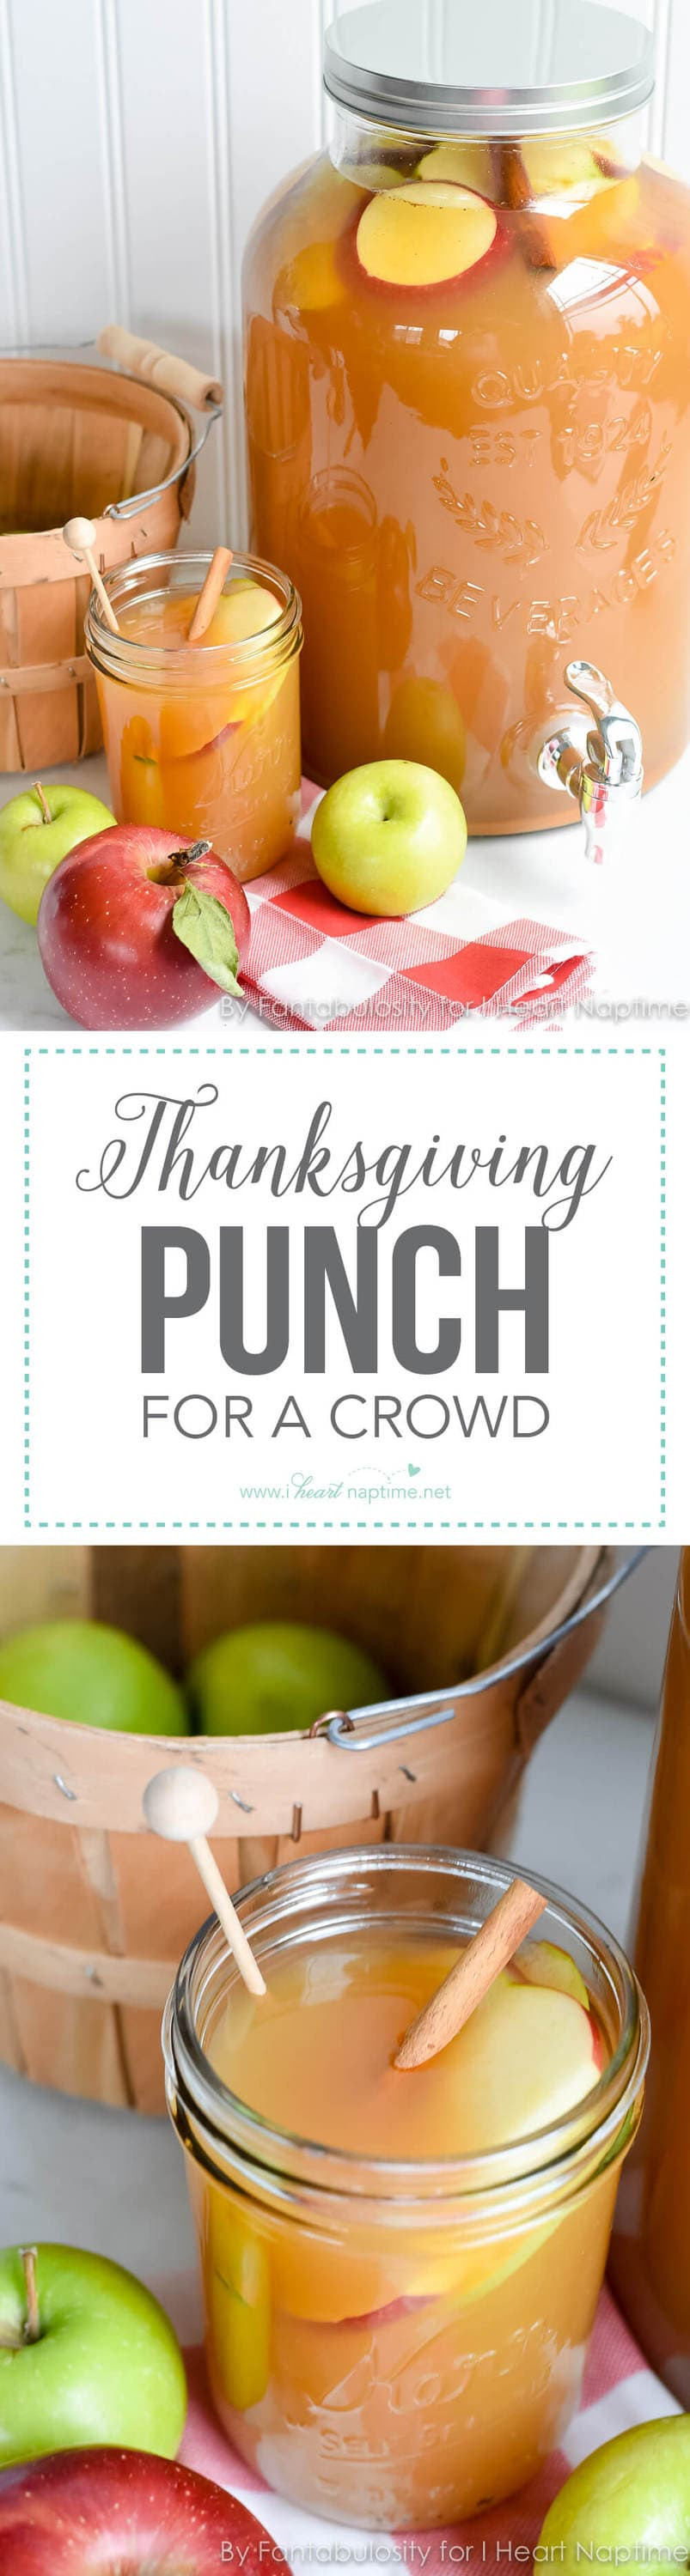 Fall Dinners For A Crowd  Thanksgiving Punch for a Crowd 3 ingre nts I Heart